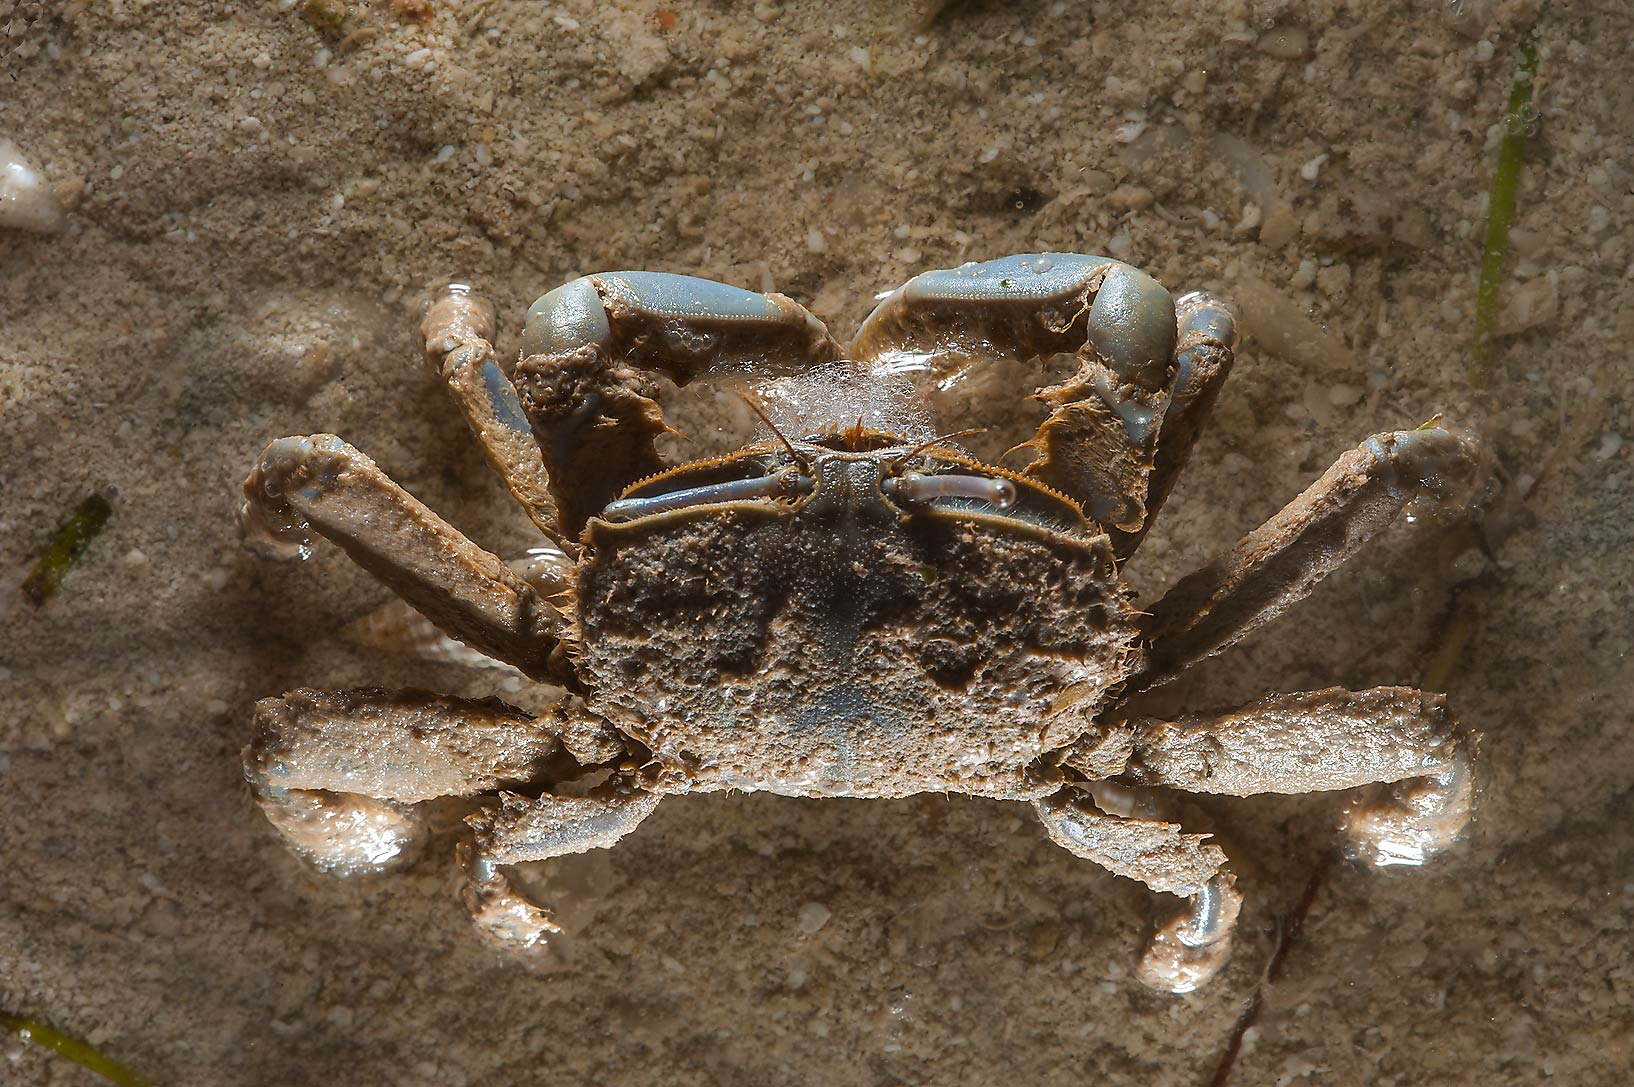 Sand crab at low tide in Al Mafyar (Mafjar) area on northern coast (Al Shamal). Qatar